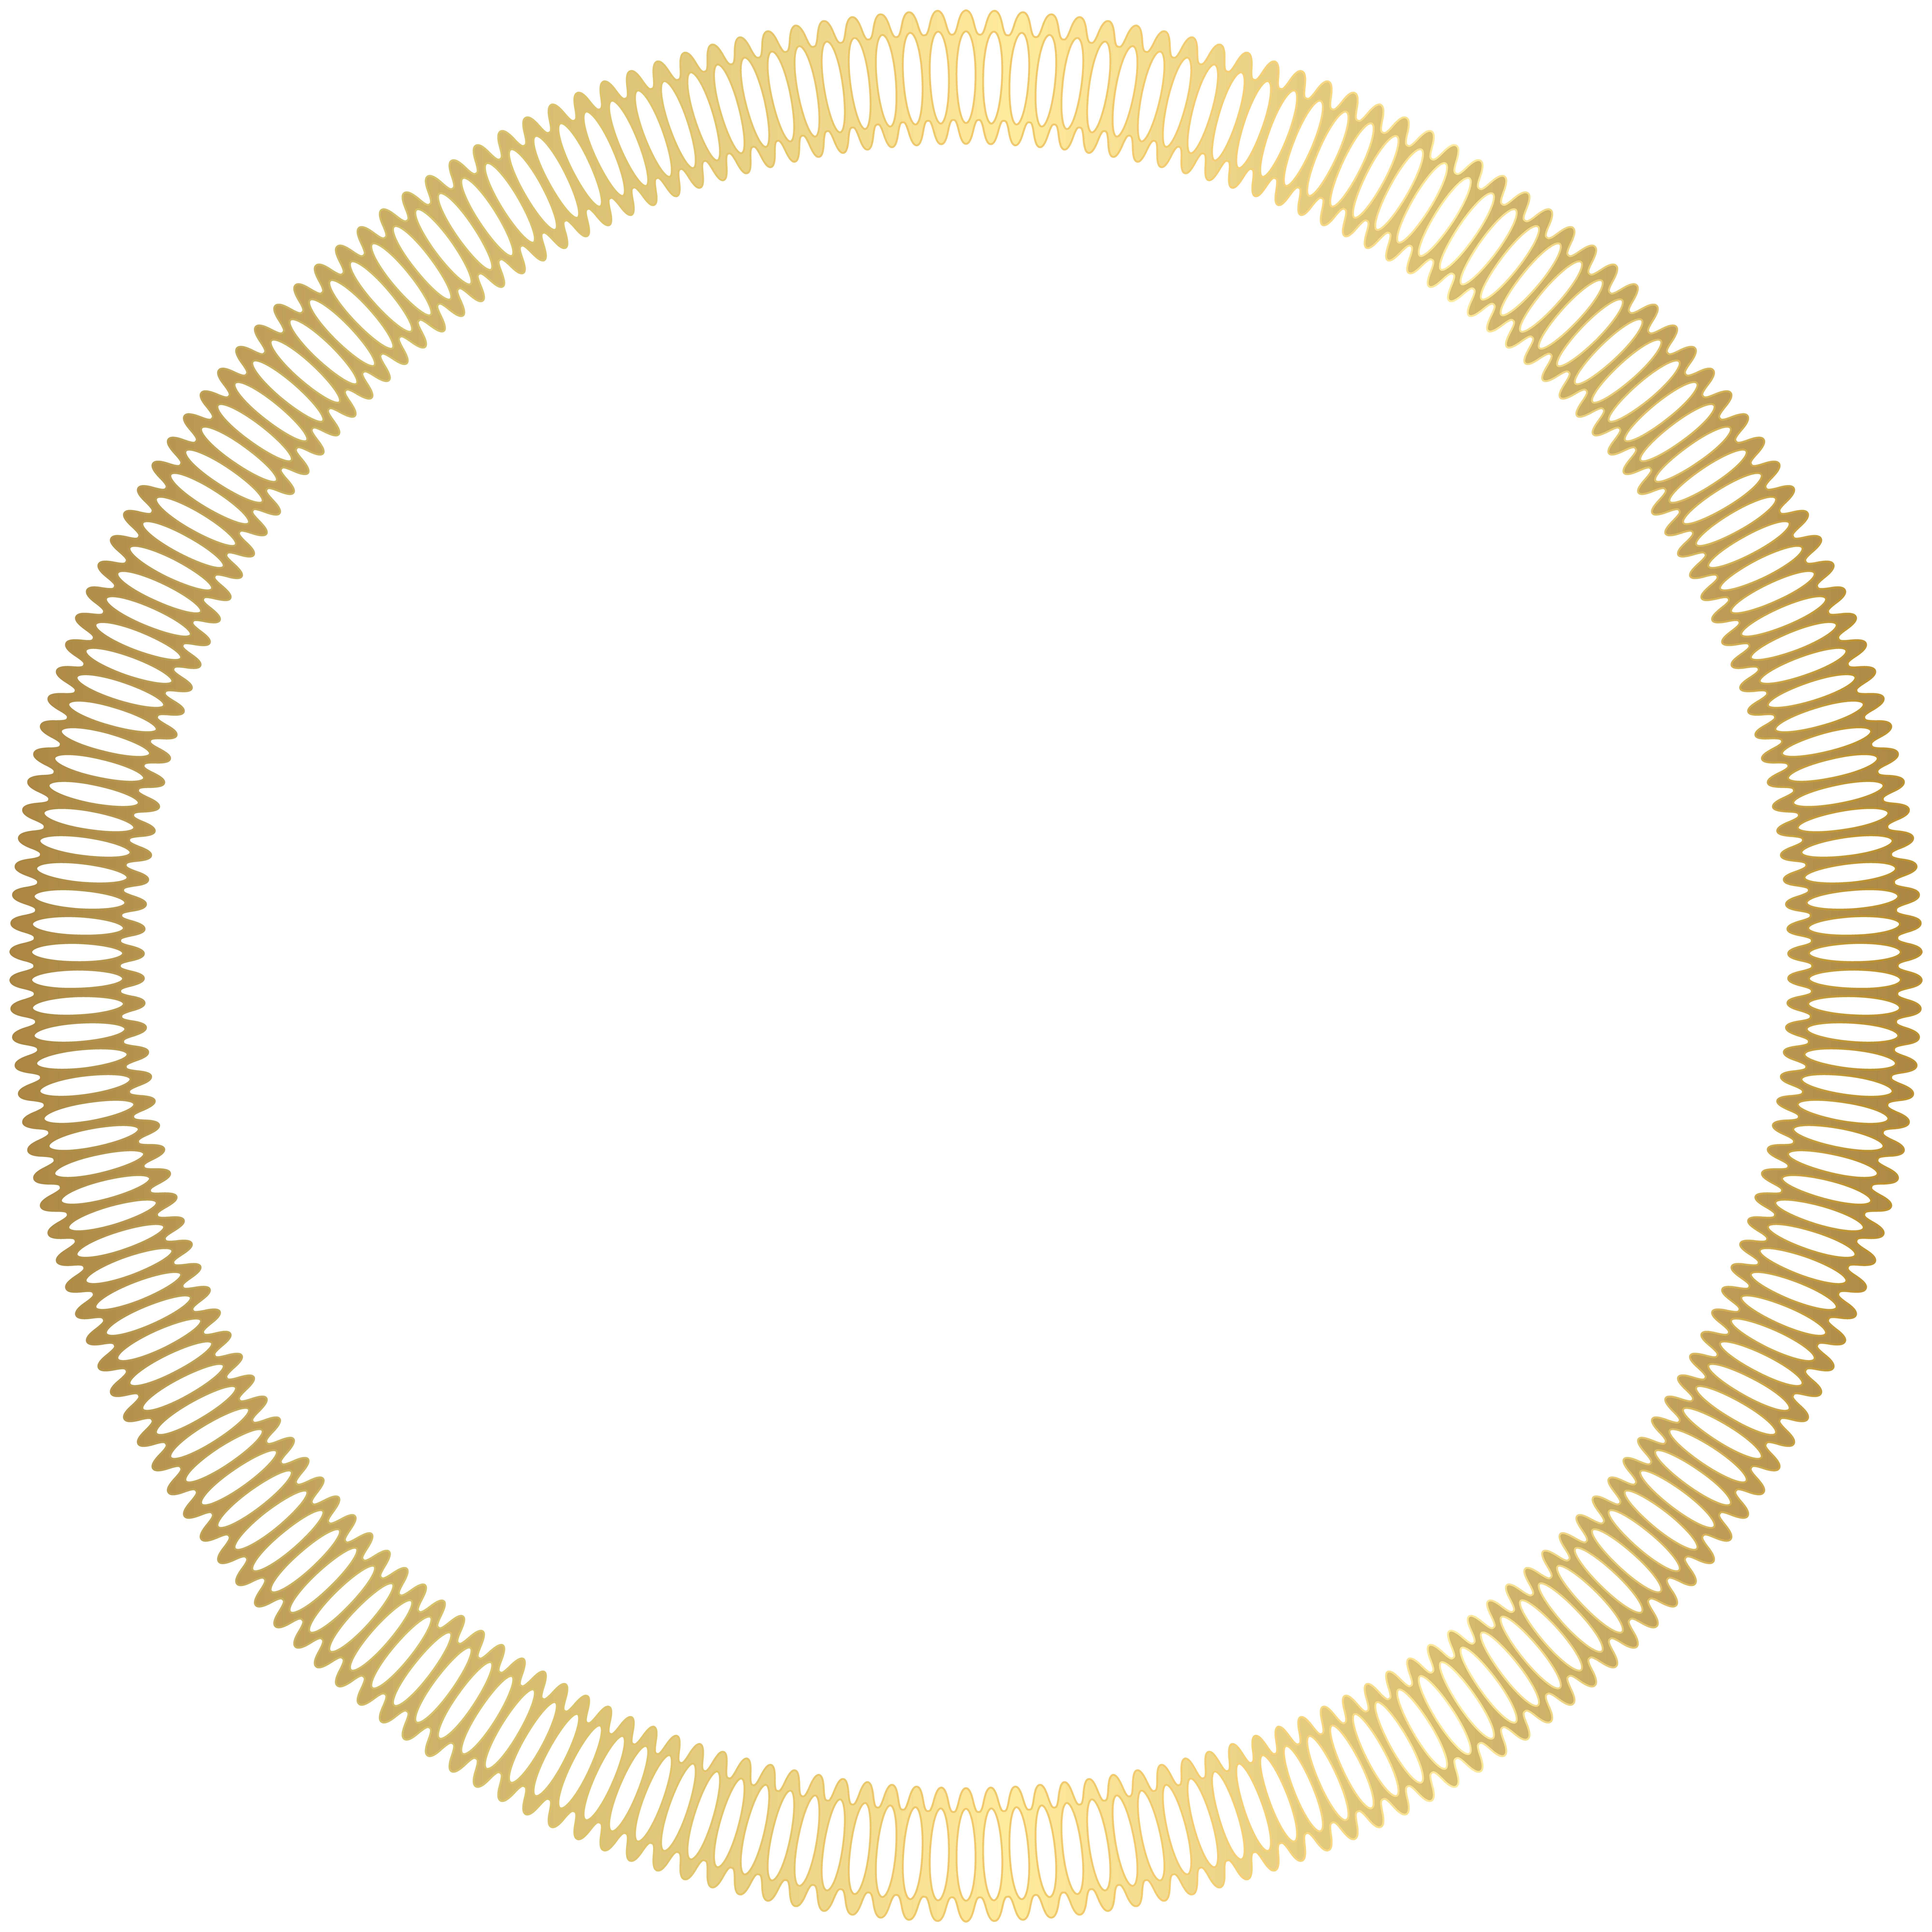 svg library stock Gold round deco border. Circle chain clipart.